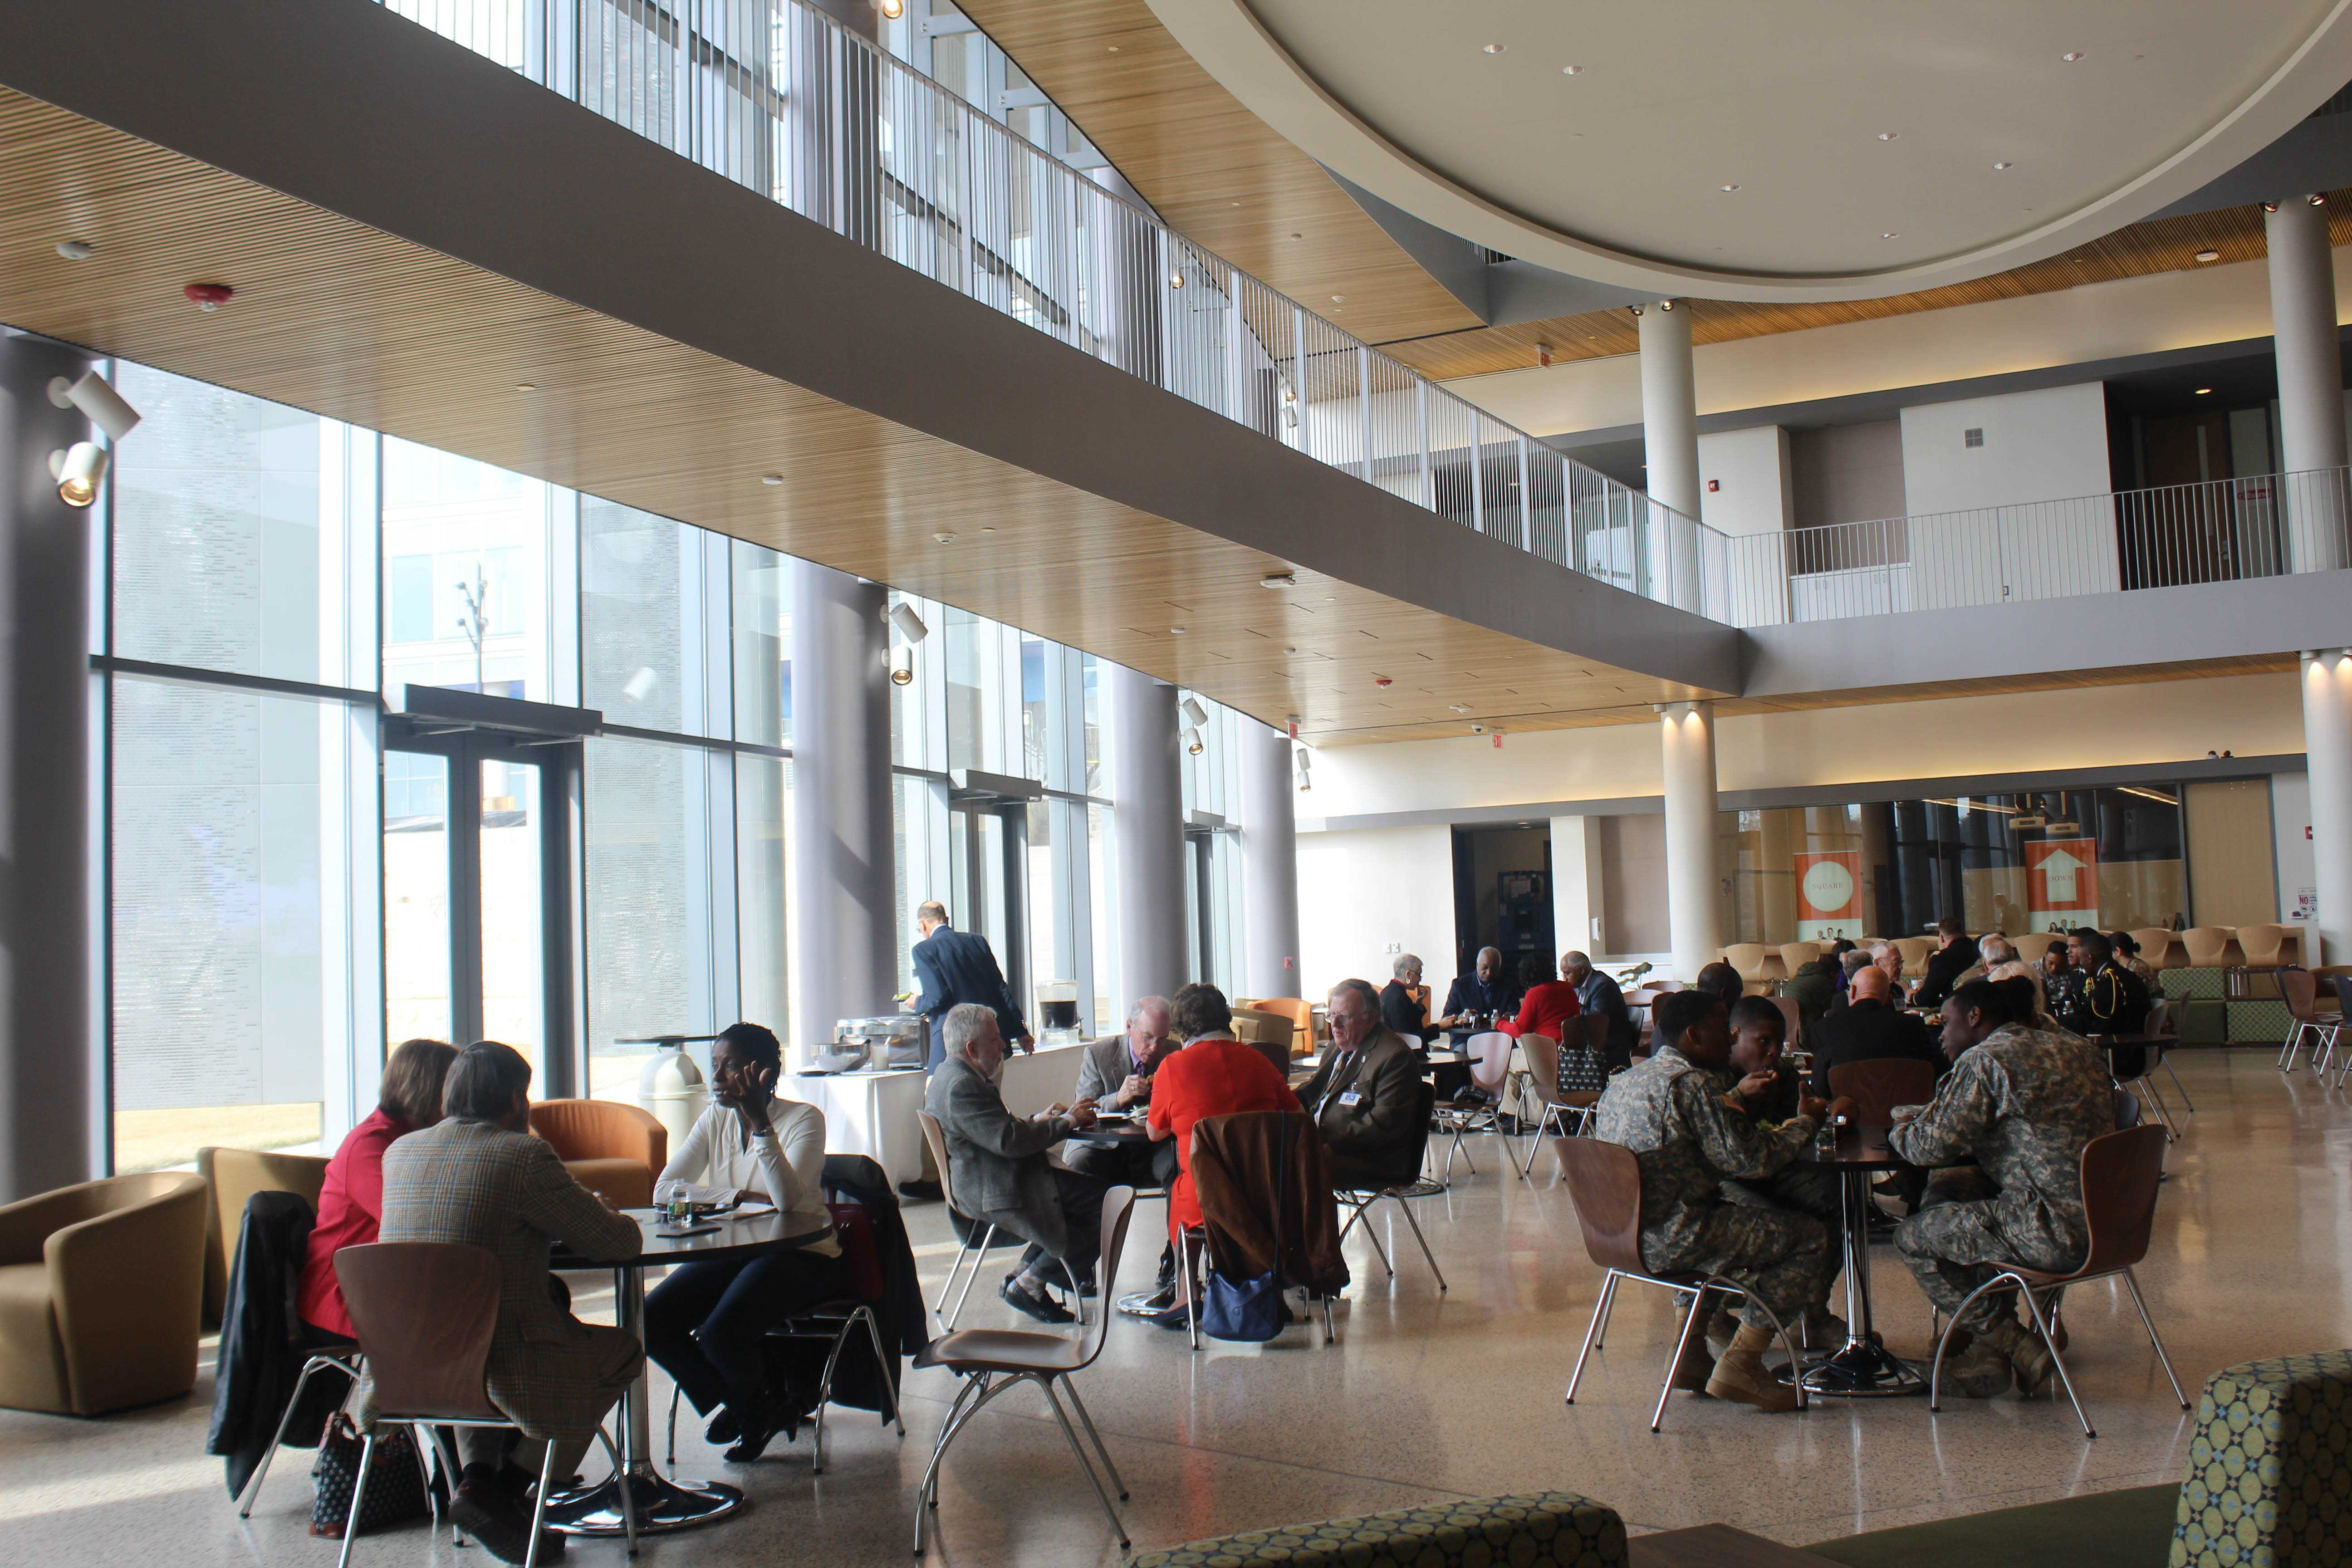 Attendees of the Tuskegee Airman Symposium eating lunch in the Earl G. Graves School of Business. Photo by Maliik Obee.